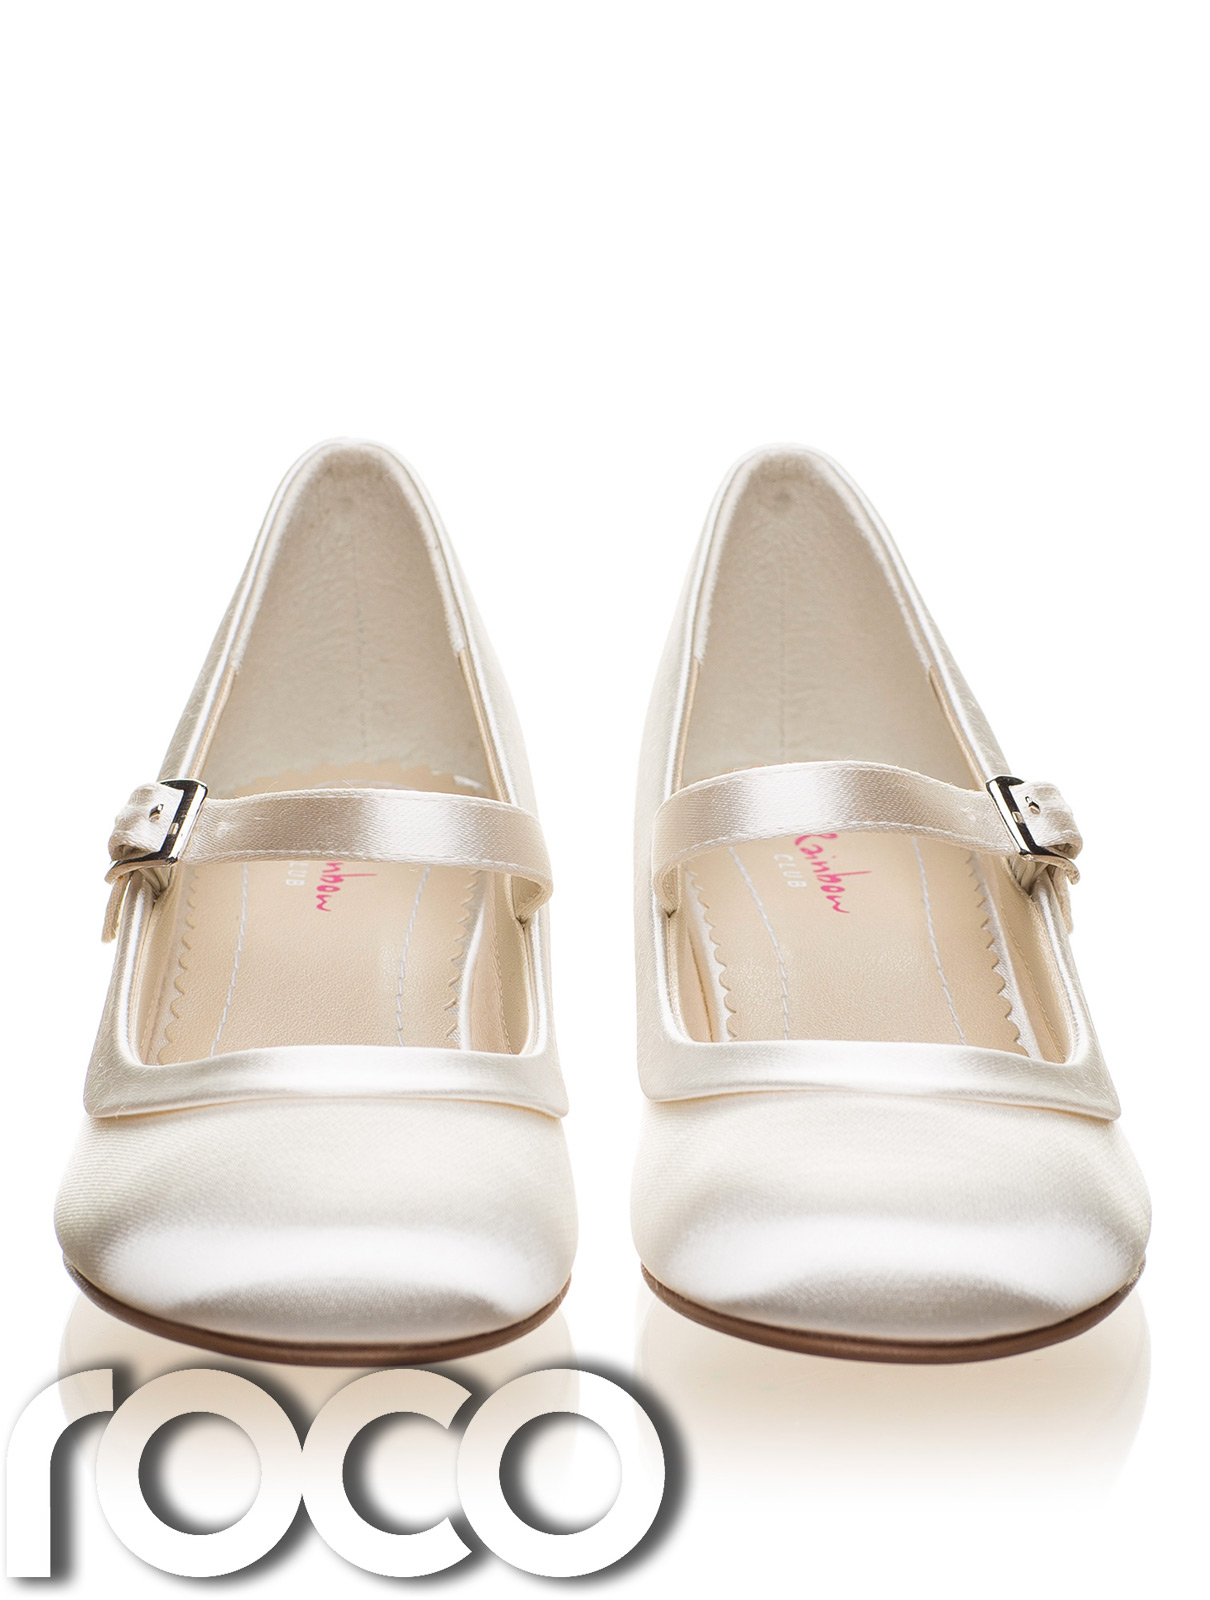 Shoes, Flower Girls Shoes, Prom Shoes, Bridesmaid Shoes, Kids Shoes